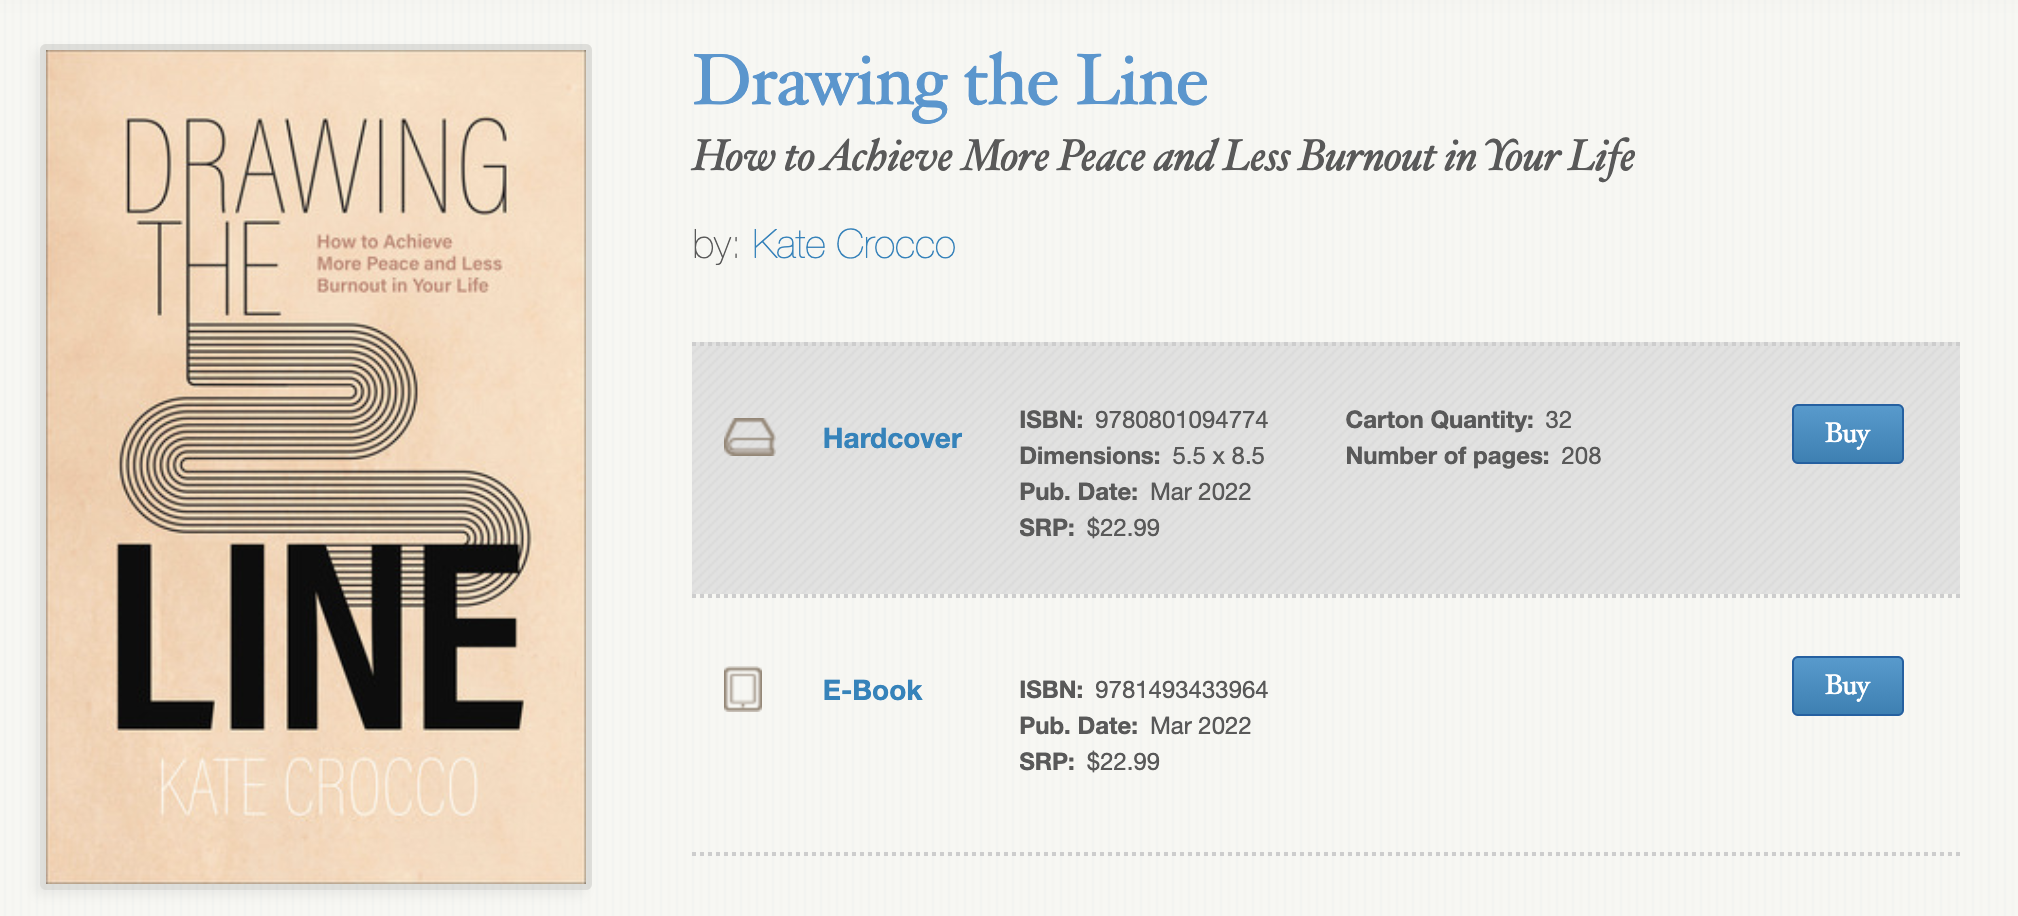 Drawing the Line book listing